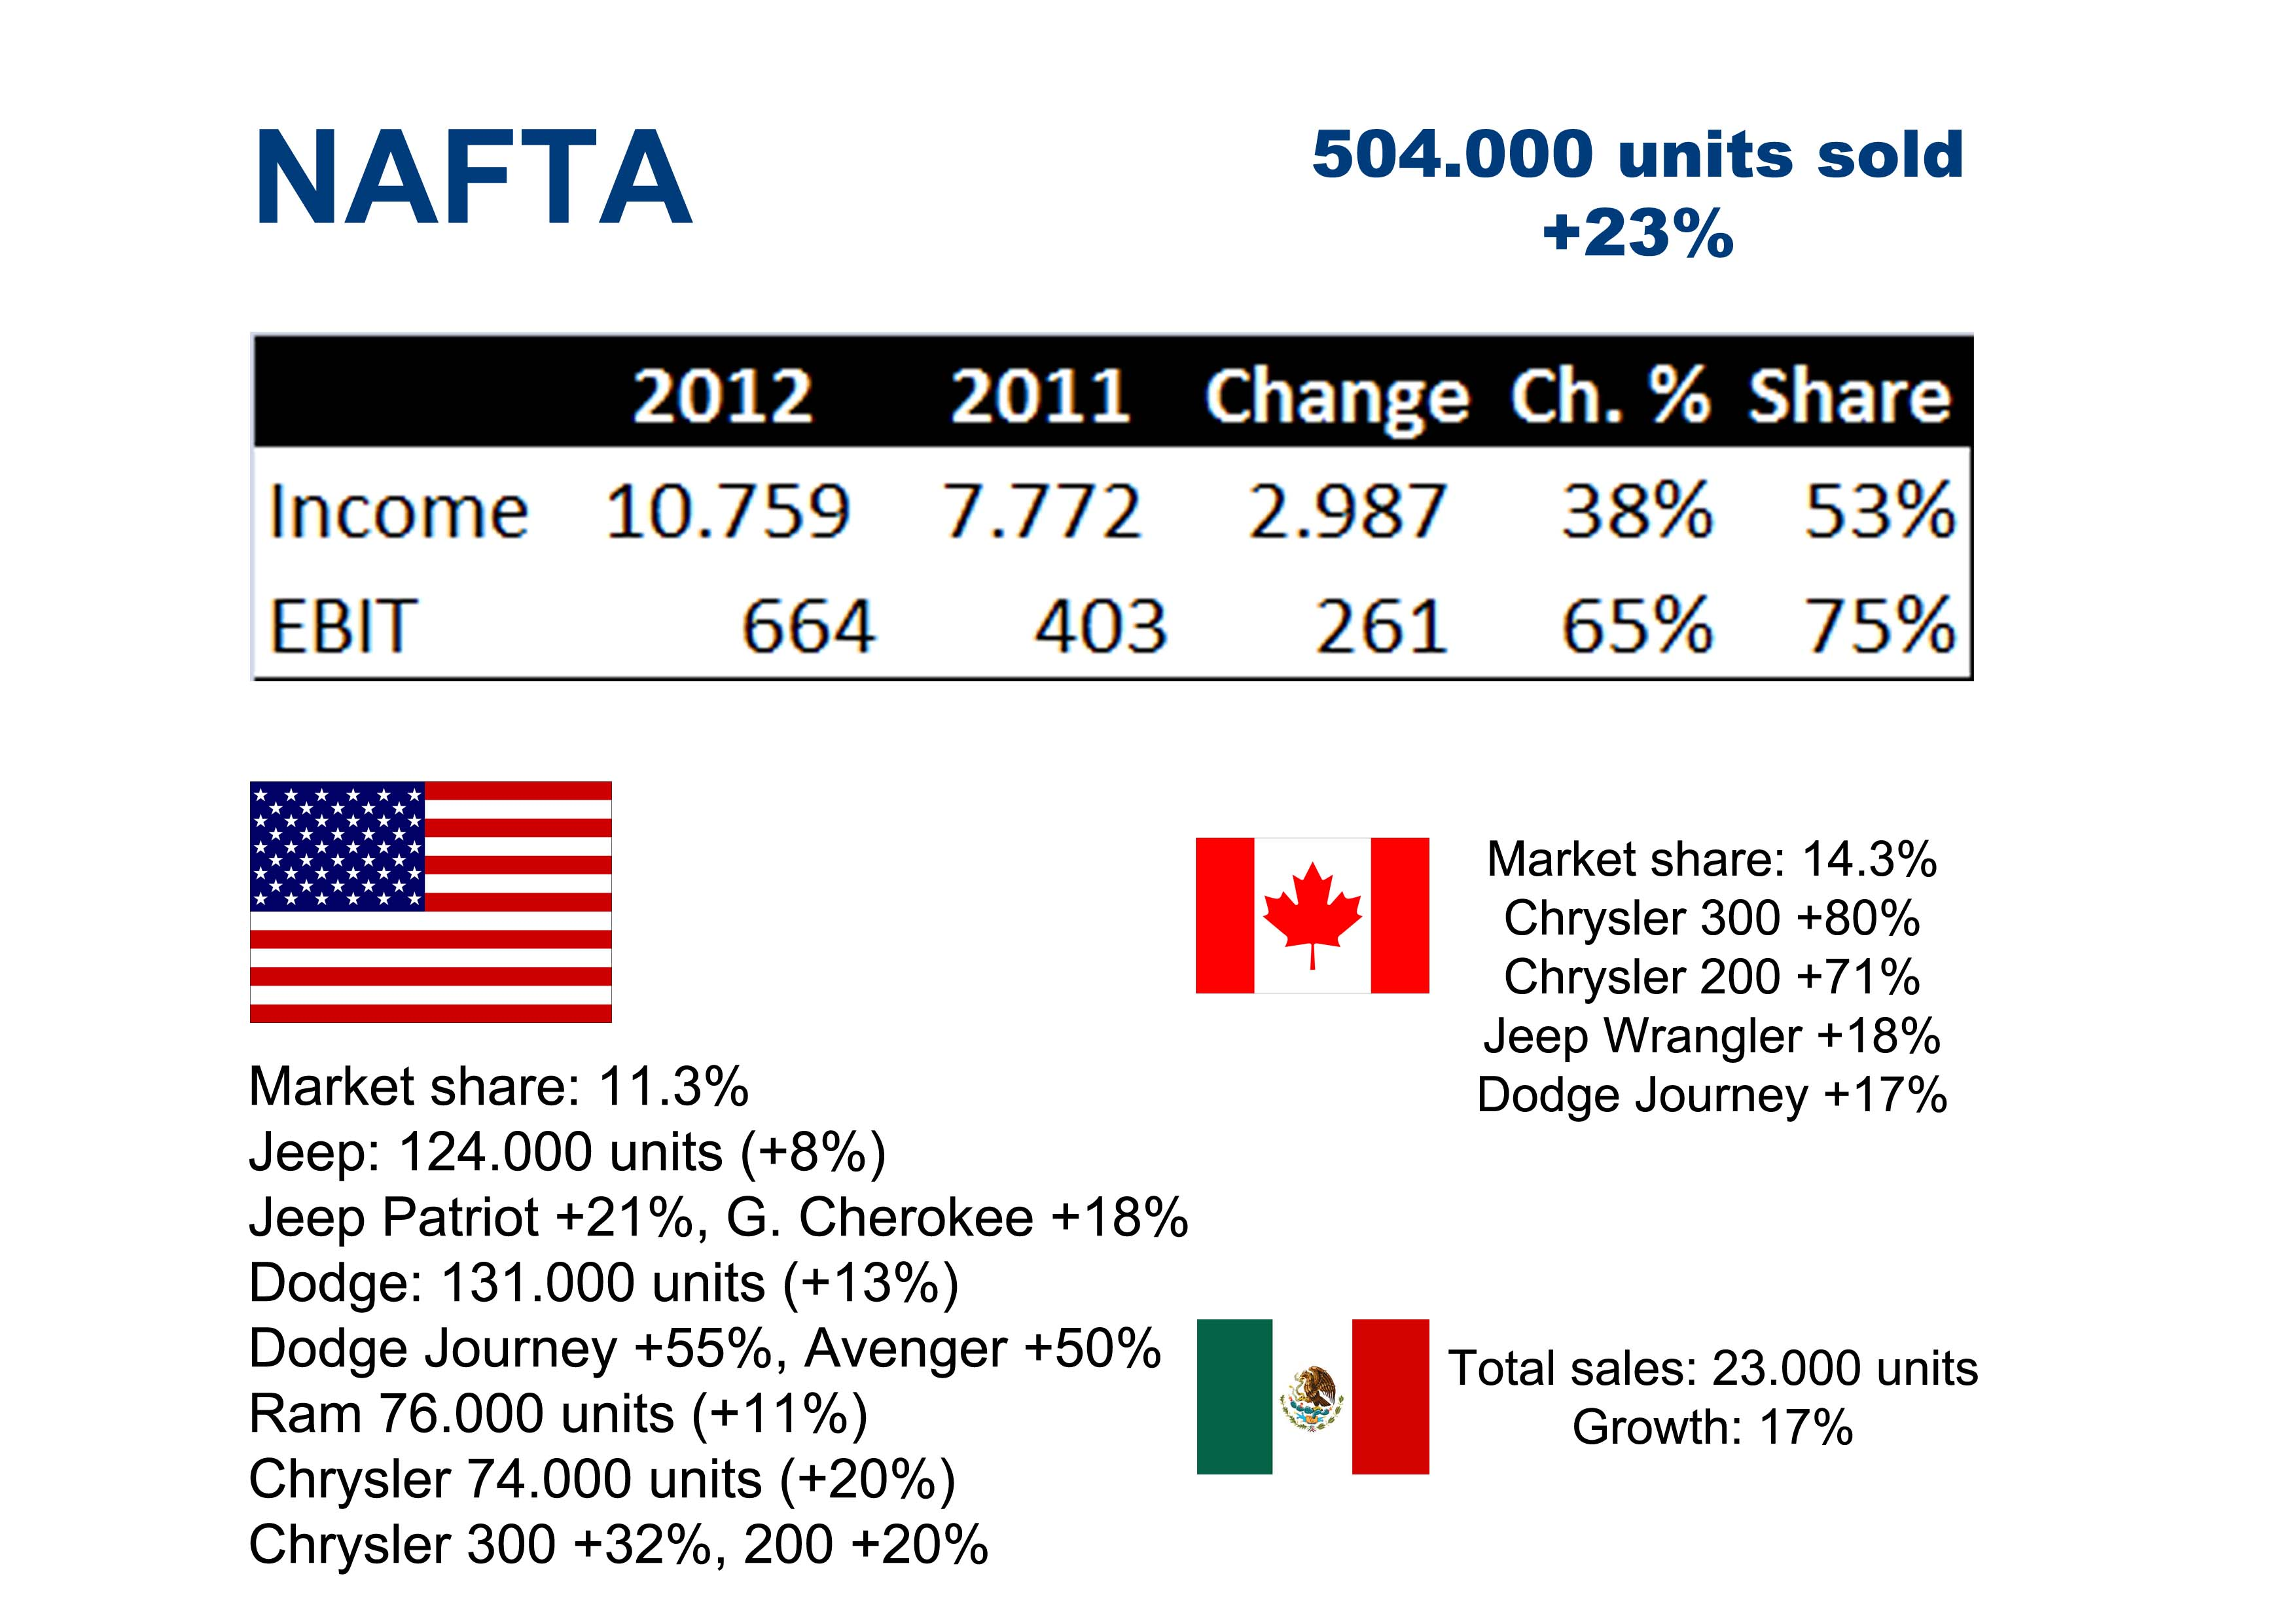 chrysler fiat case study Case study: chrysler and fiat this case study is about automobile companies details are described below 41 background of case chrysler and fiat are auto-mobile companies chrysler's best assets were its jeeps, minivans, and light trucks fiat's expertise was in small car technology and fuel-efficient.